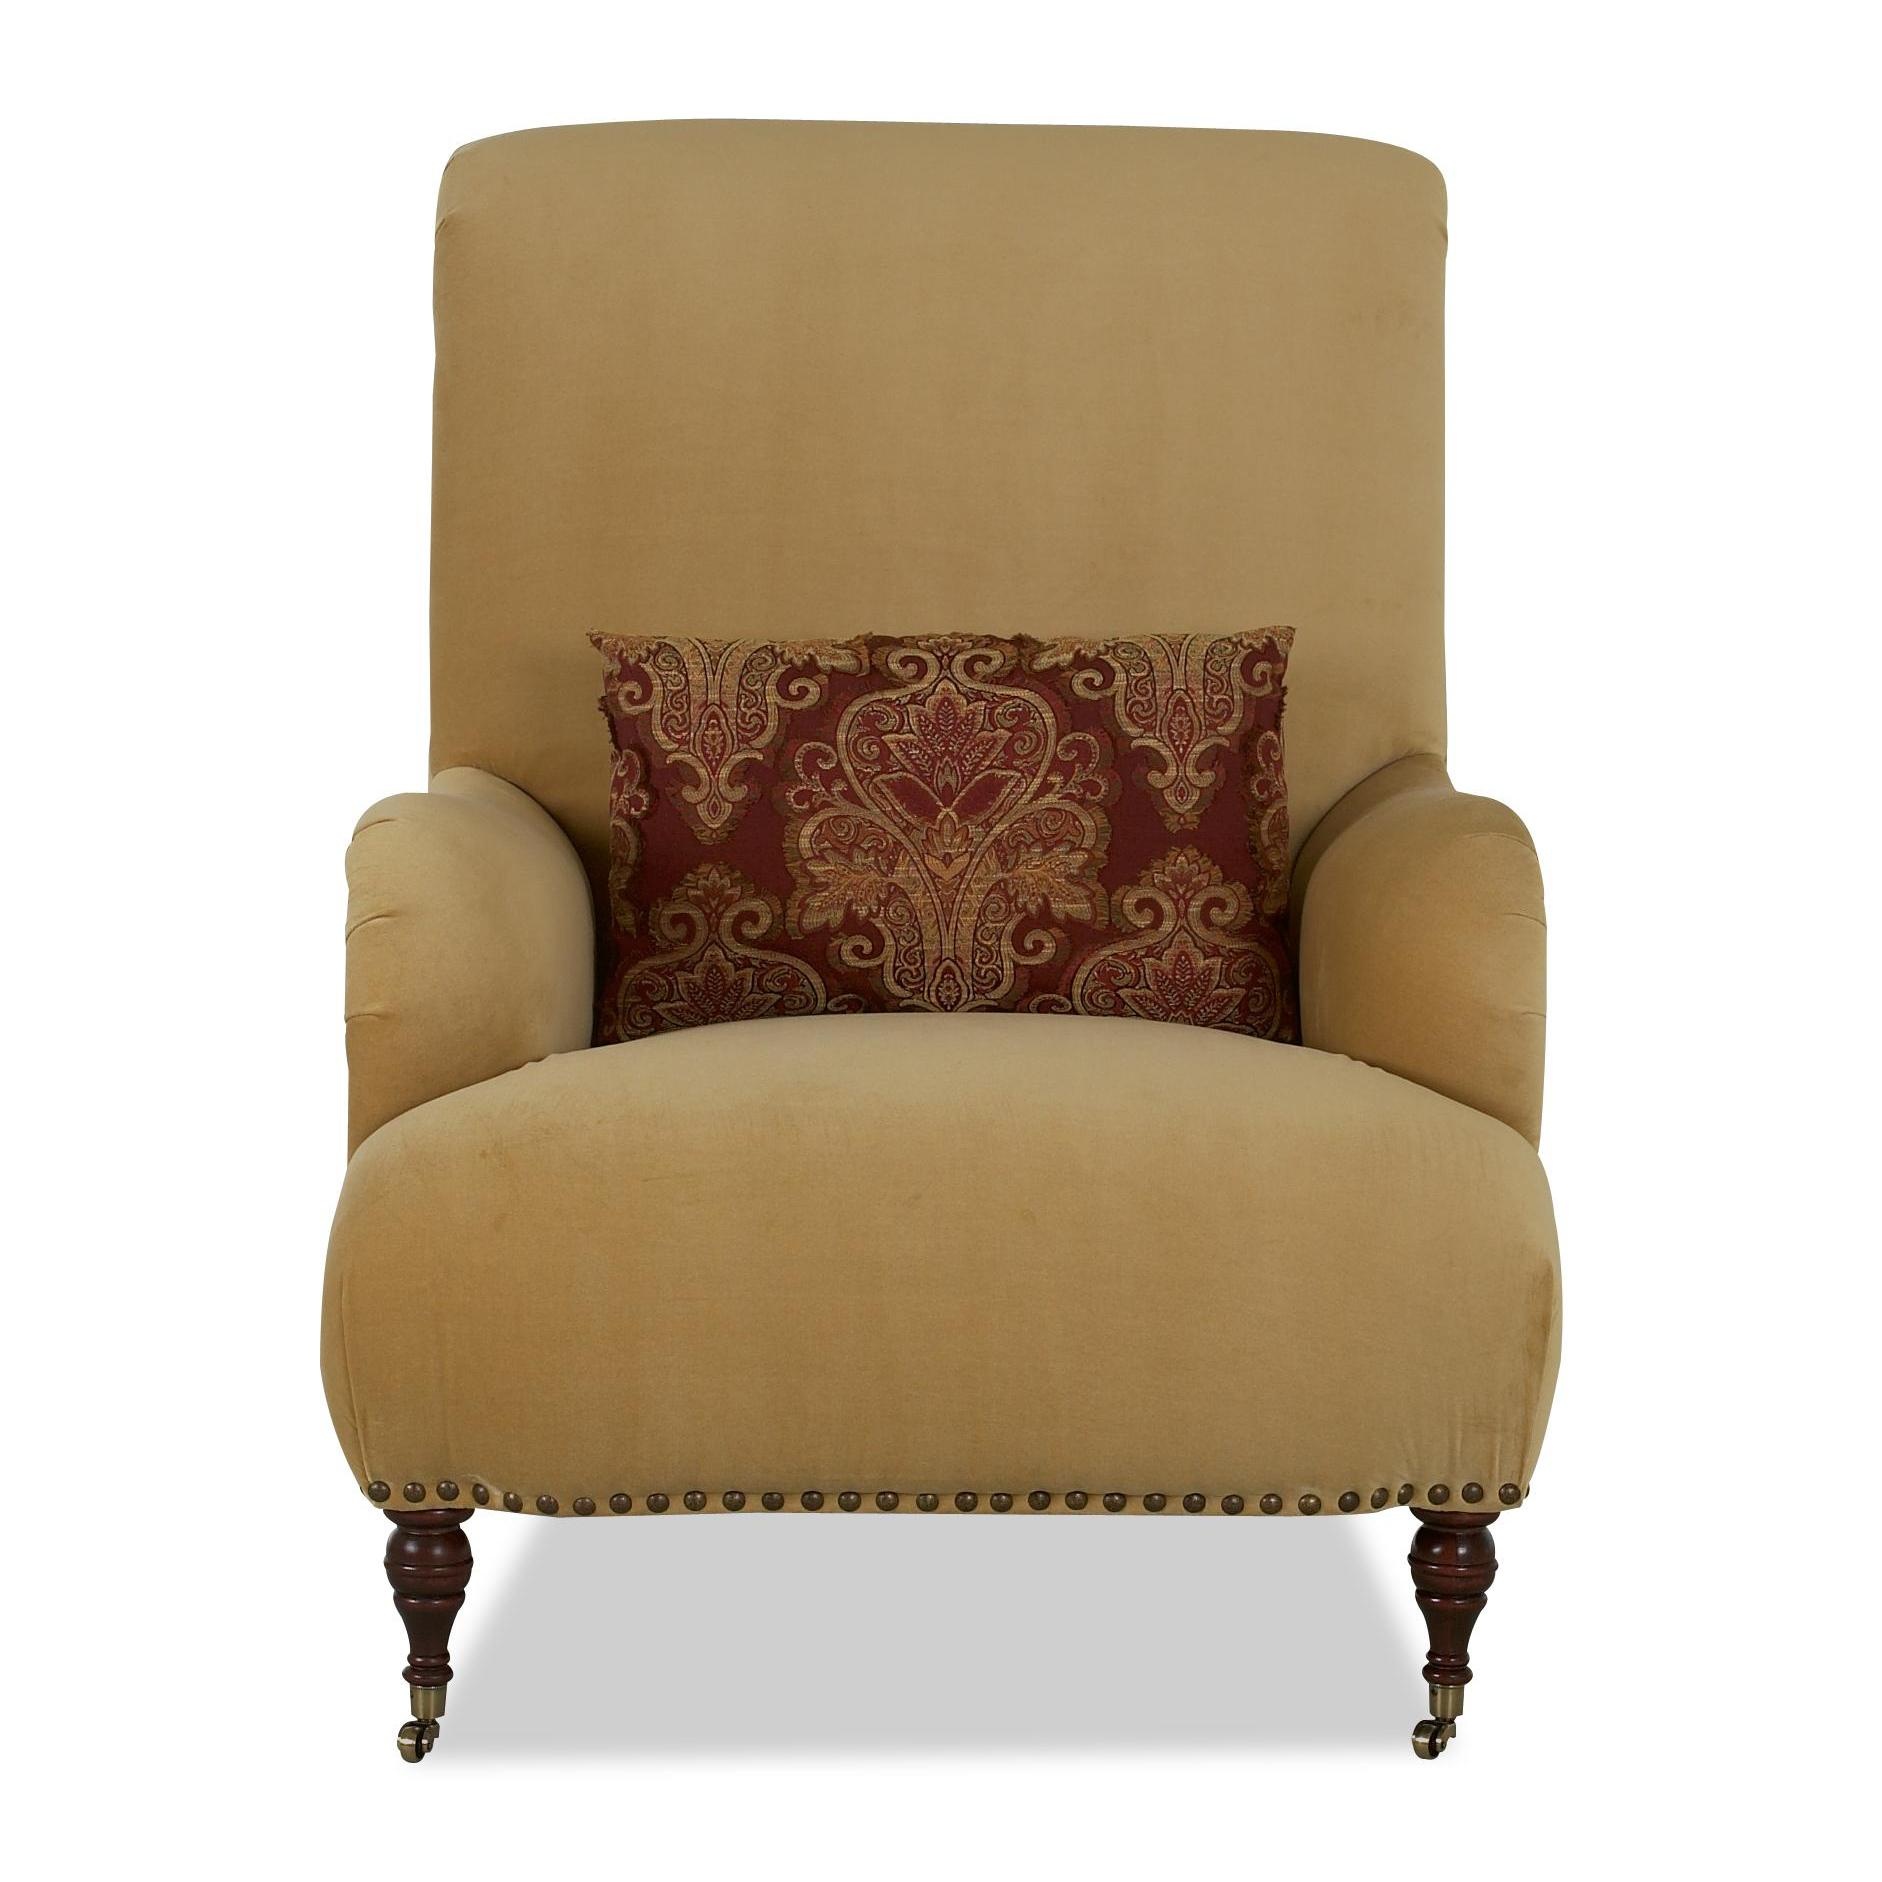 Klaussner Chairs and Accents Dapper Accent Chair - Item Number: 2010C